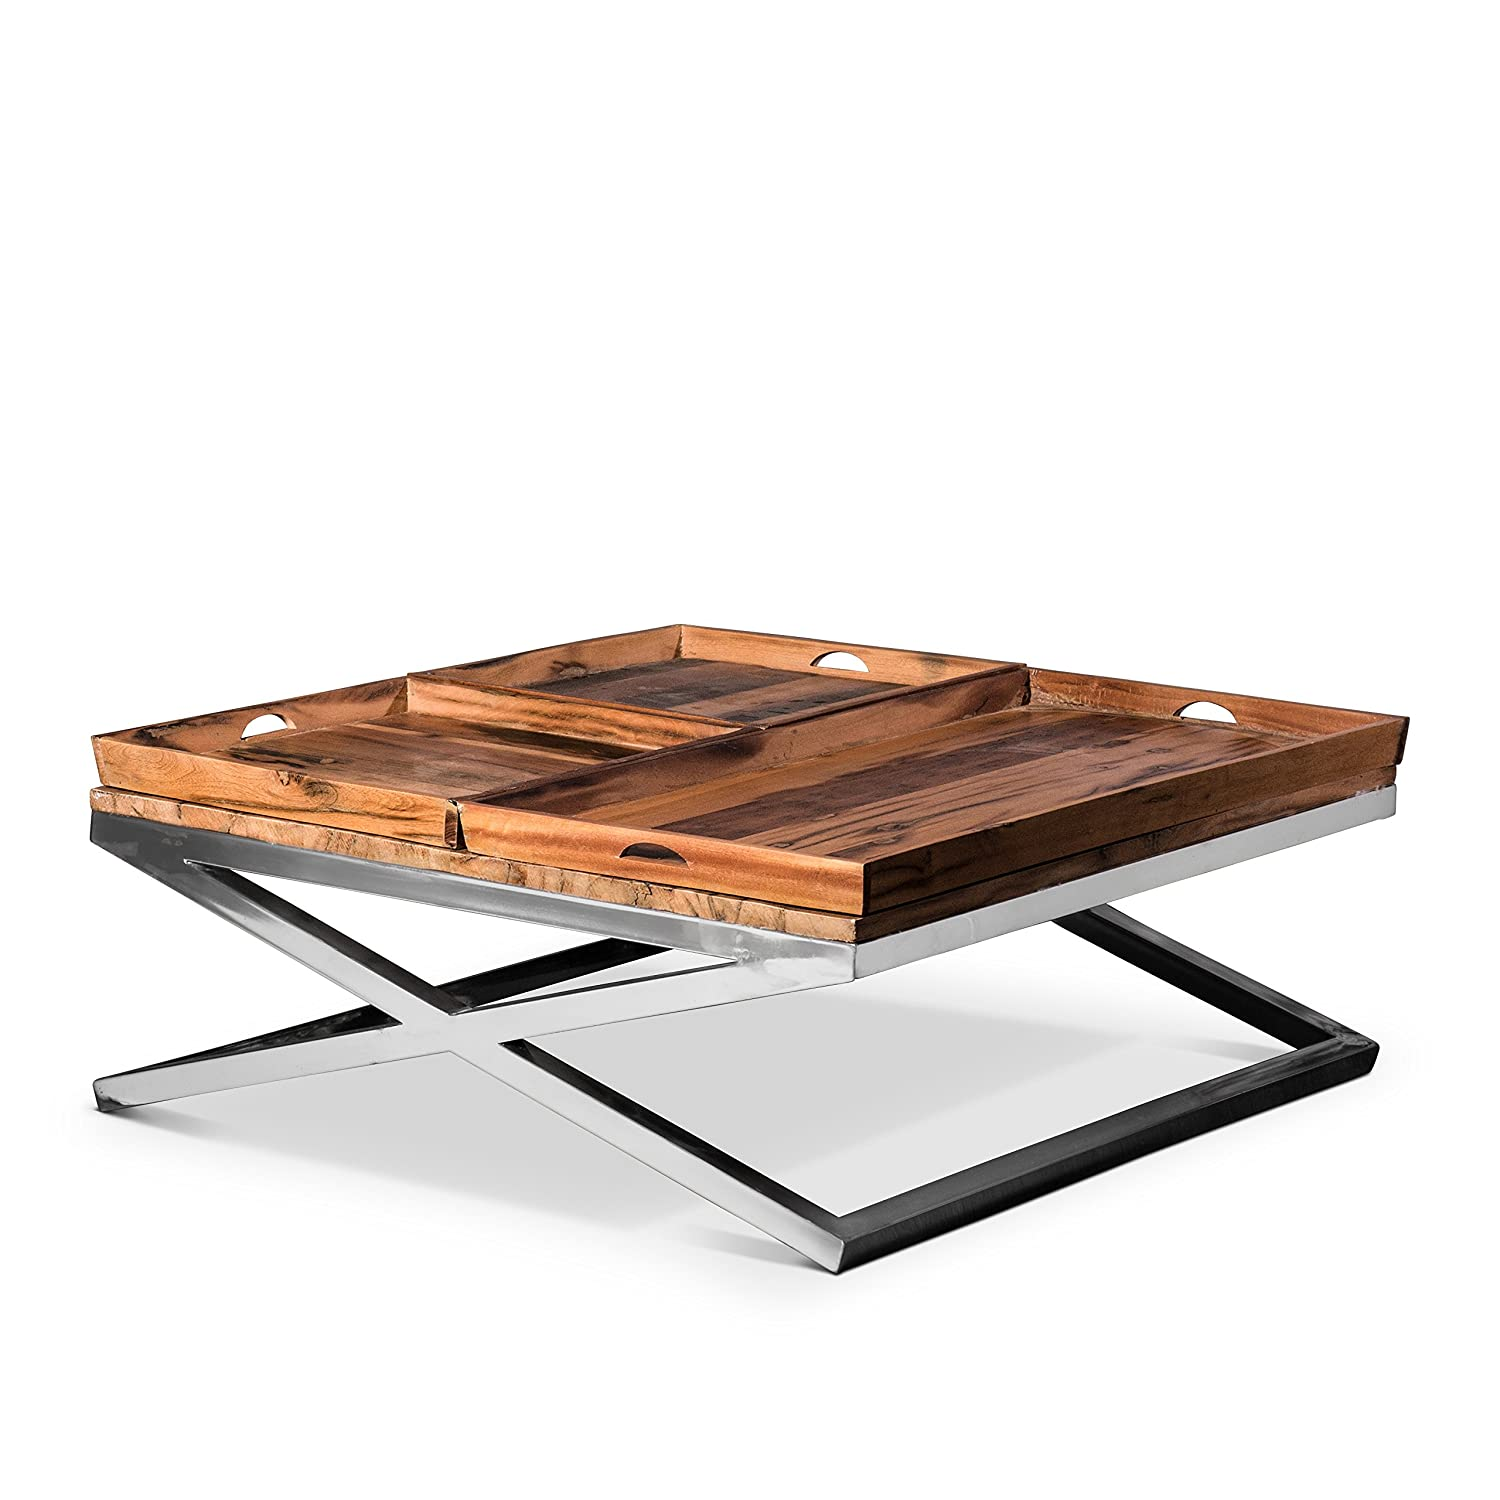 Artemano CT0712143 Big Coffee Table with Three Trays - Natural